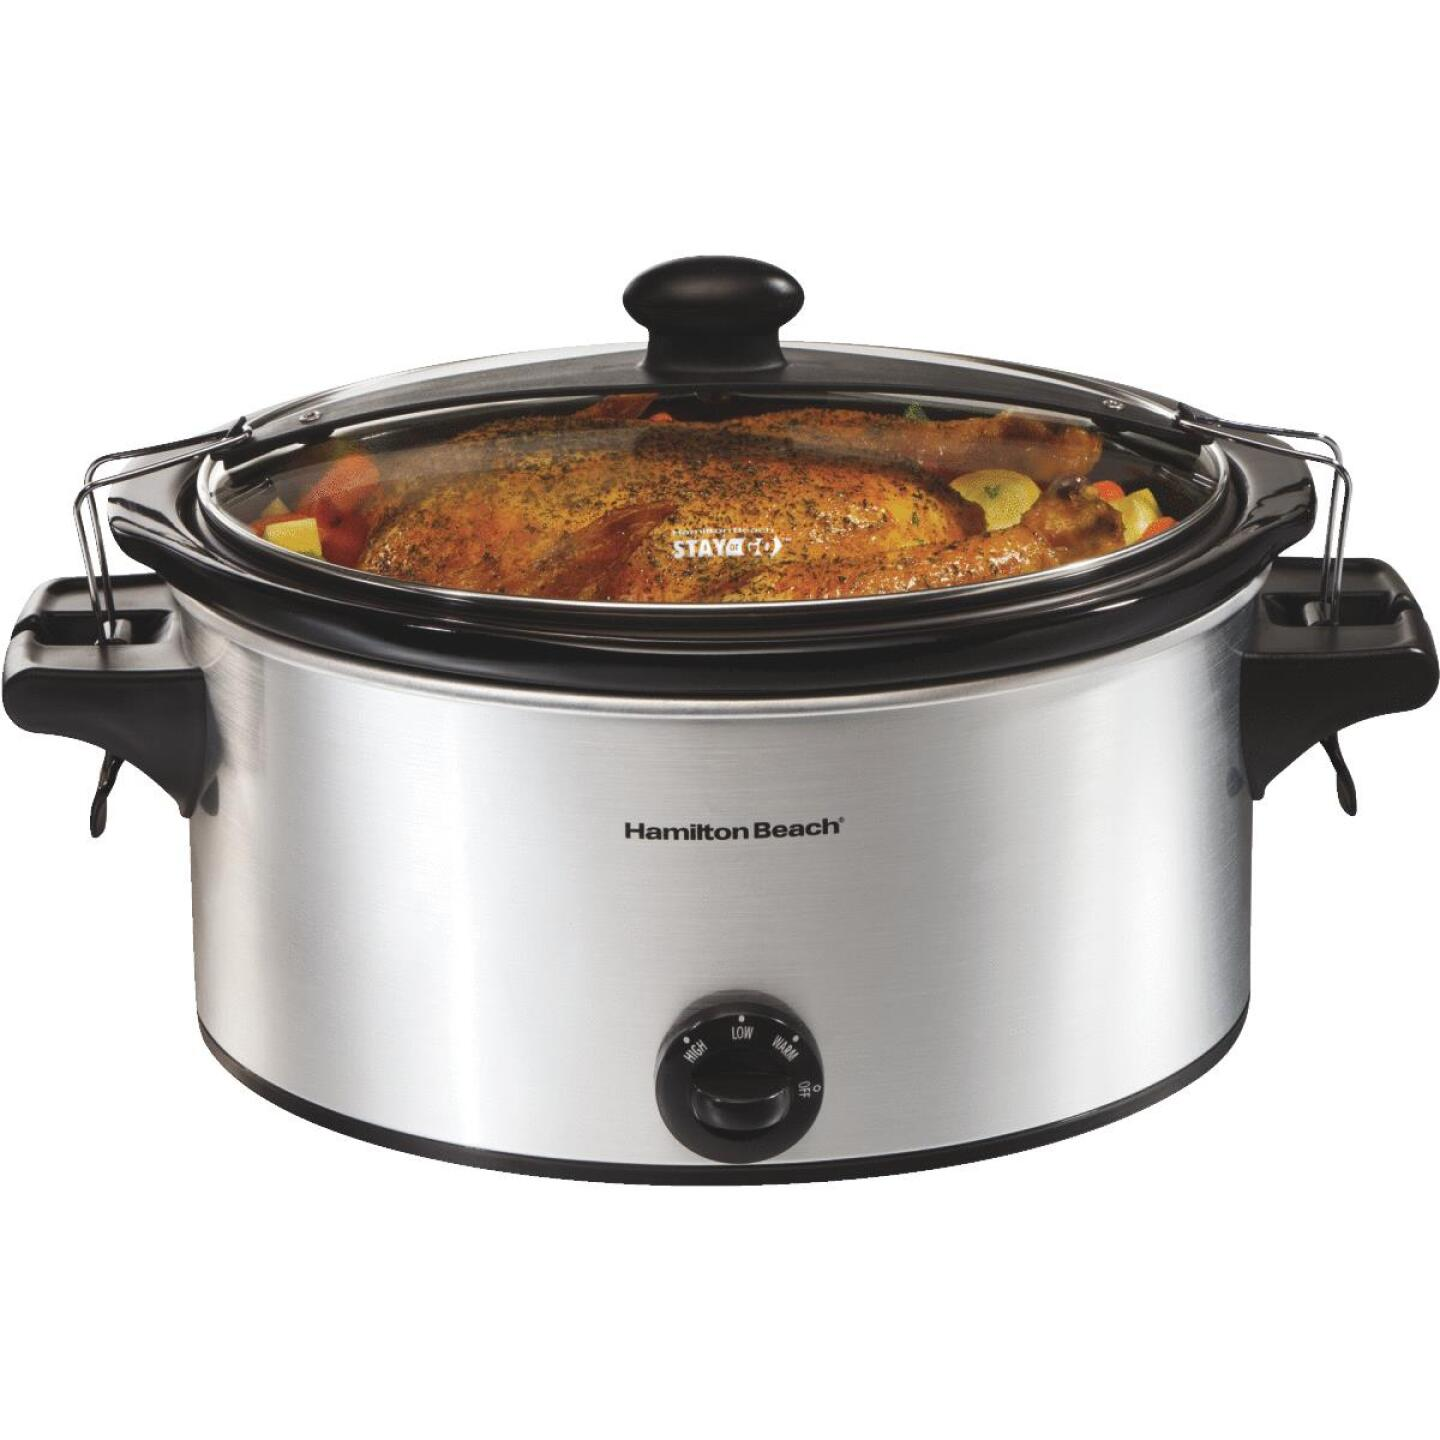 Hamilton Beach Stay or Go 6 Qt. Stainless Steel Slow Cooker Image 8